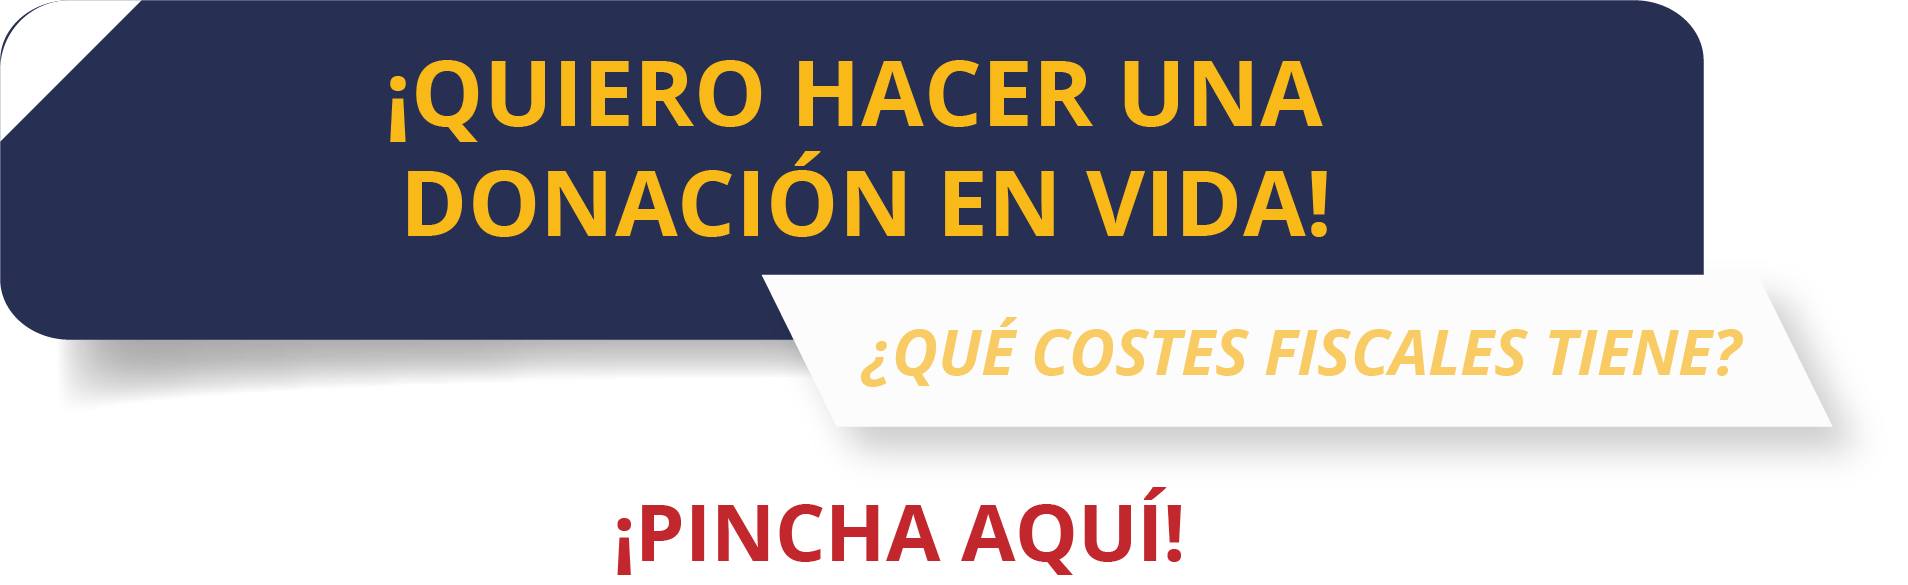 Coste fiscal herencia